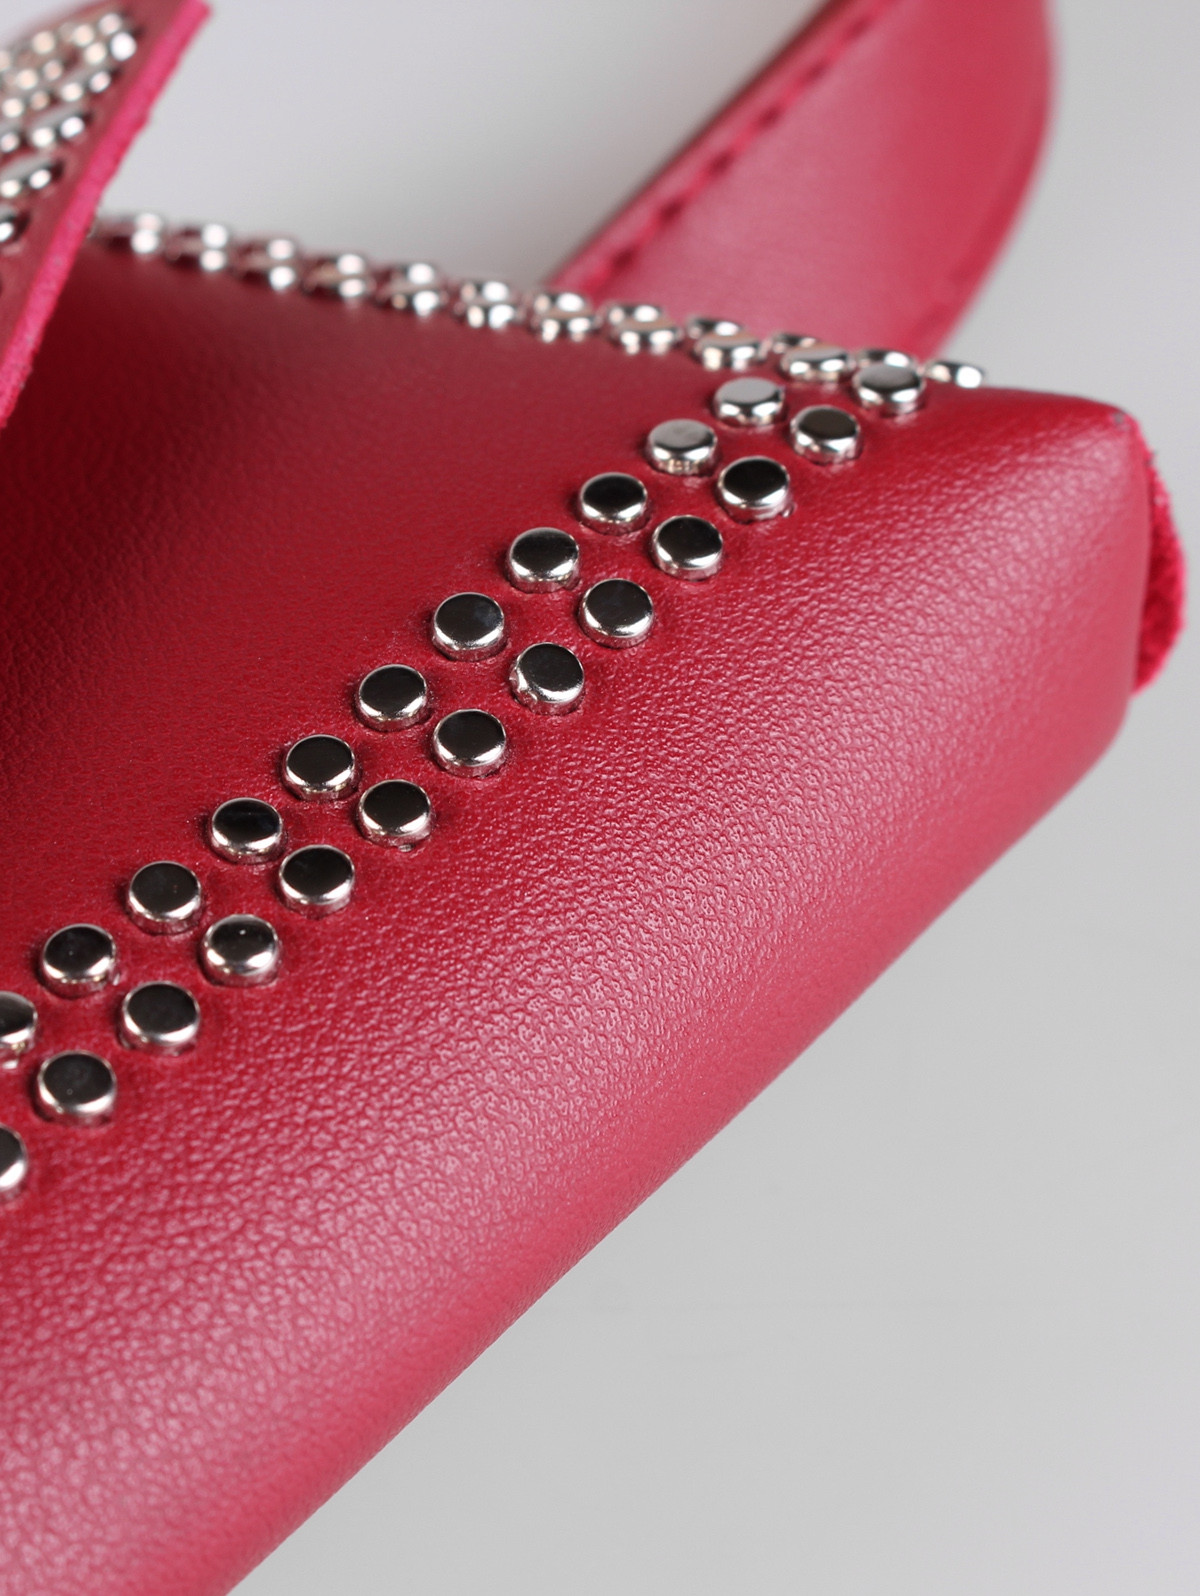 Rivet Funny Bag Decorative Faux Leather Belt Bag CHILLI PEPPER